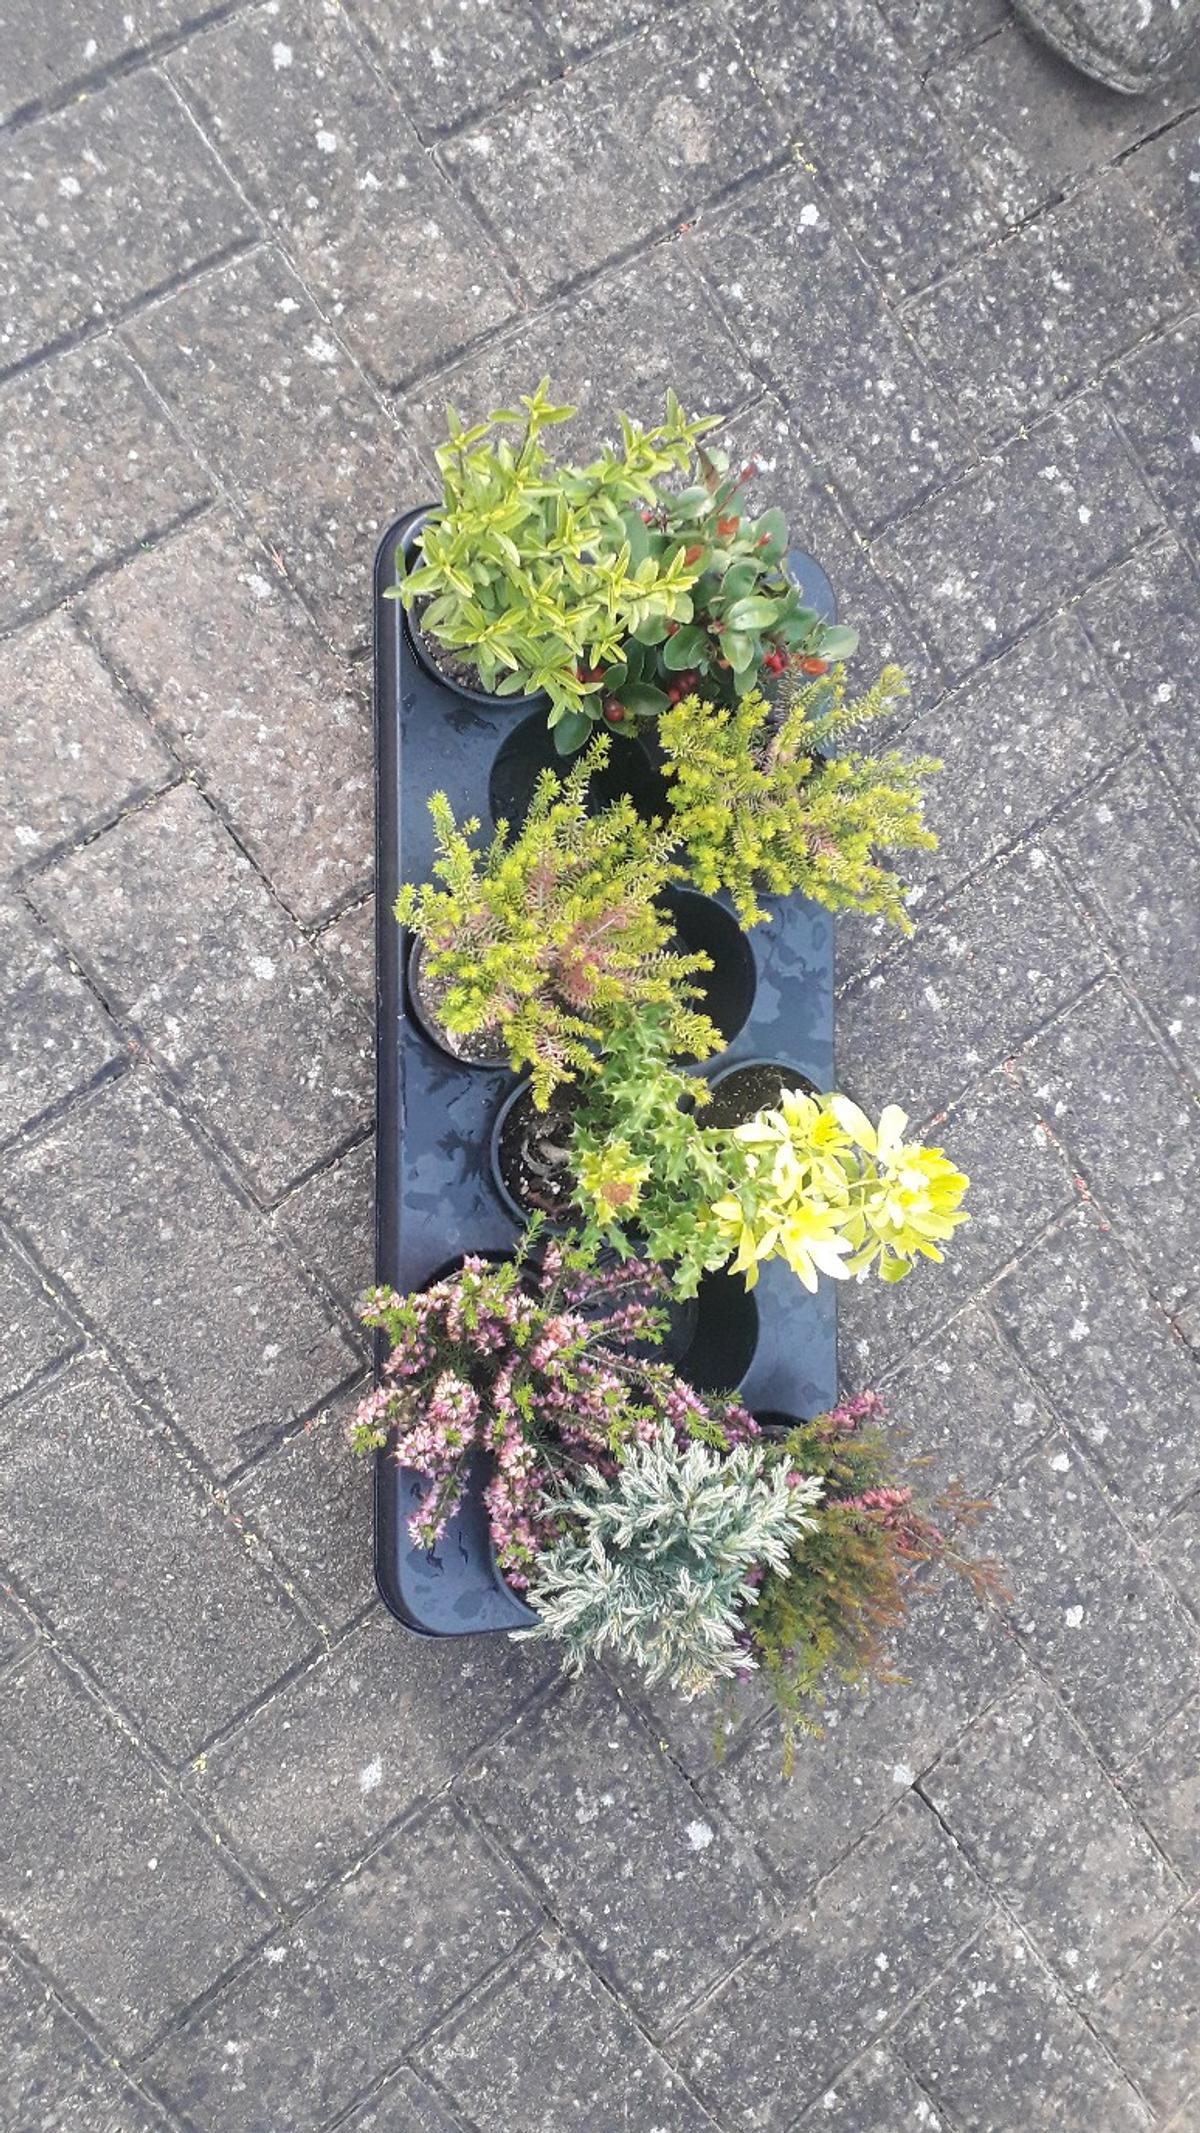 10 mixed garden shrubs high quality potted plants £10